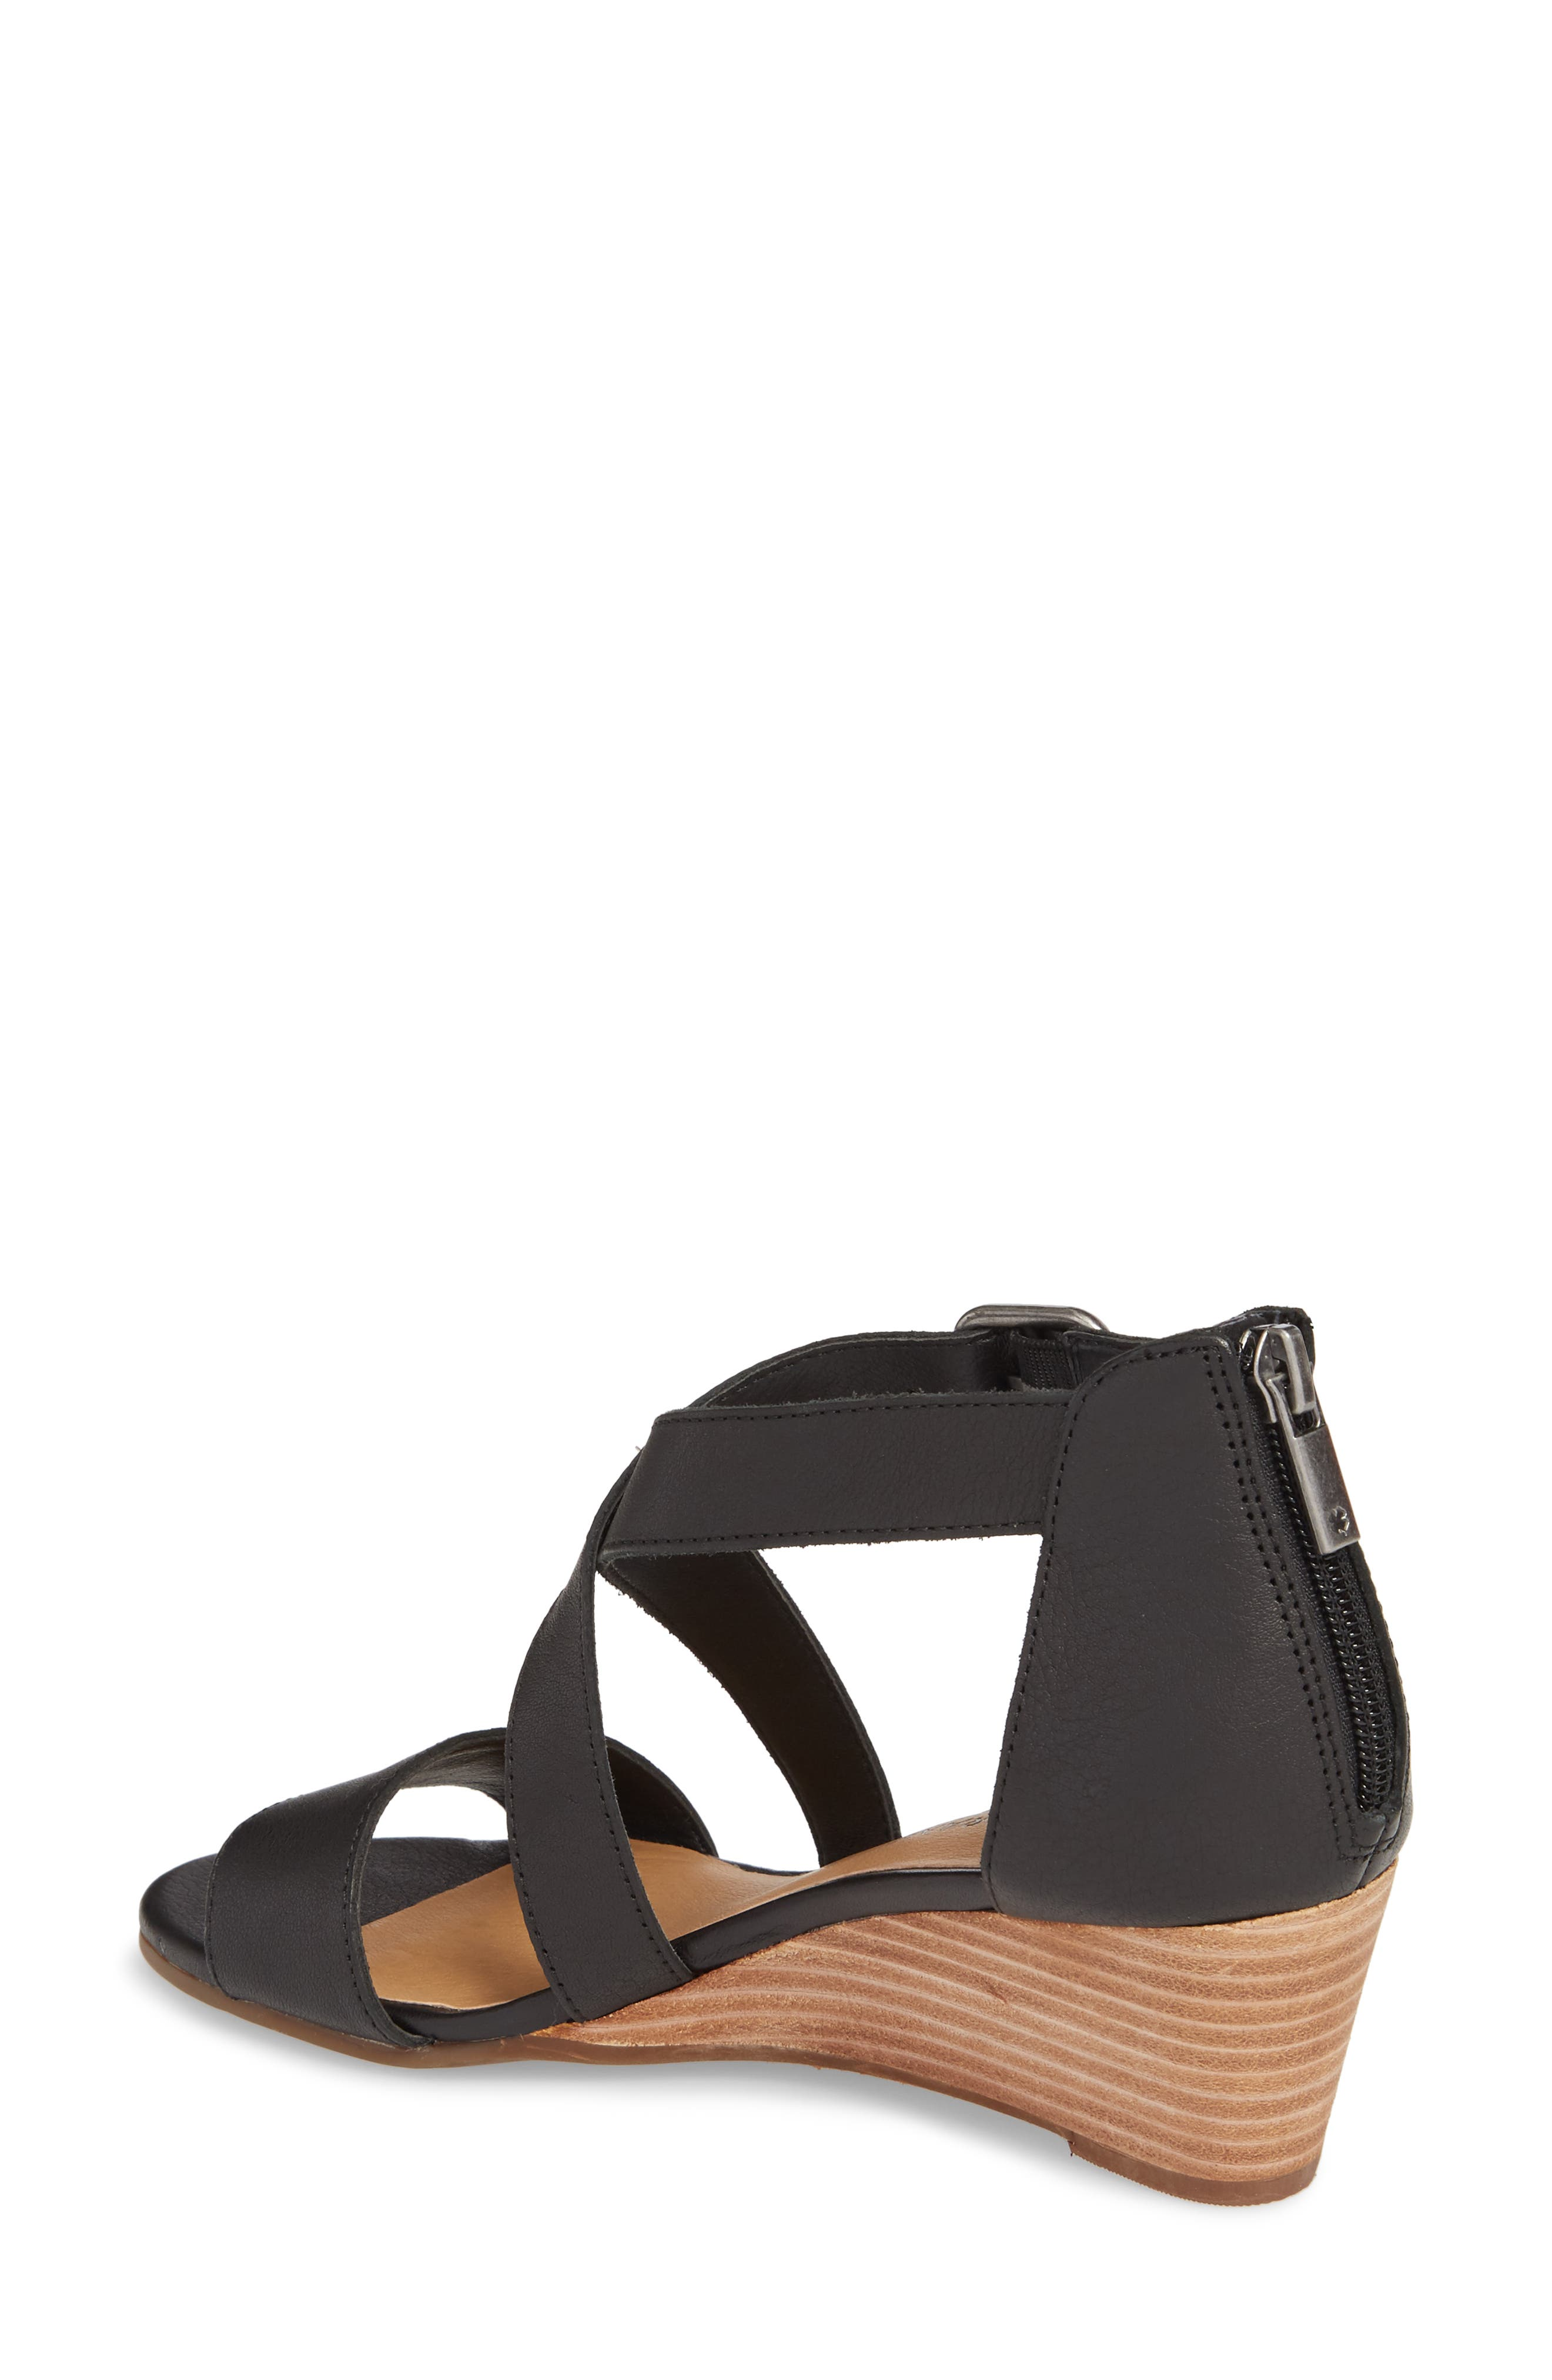 Jestah Wedge Sandal,                             Alternate thumbnail 2, color,                             Black Leather